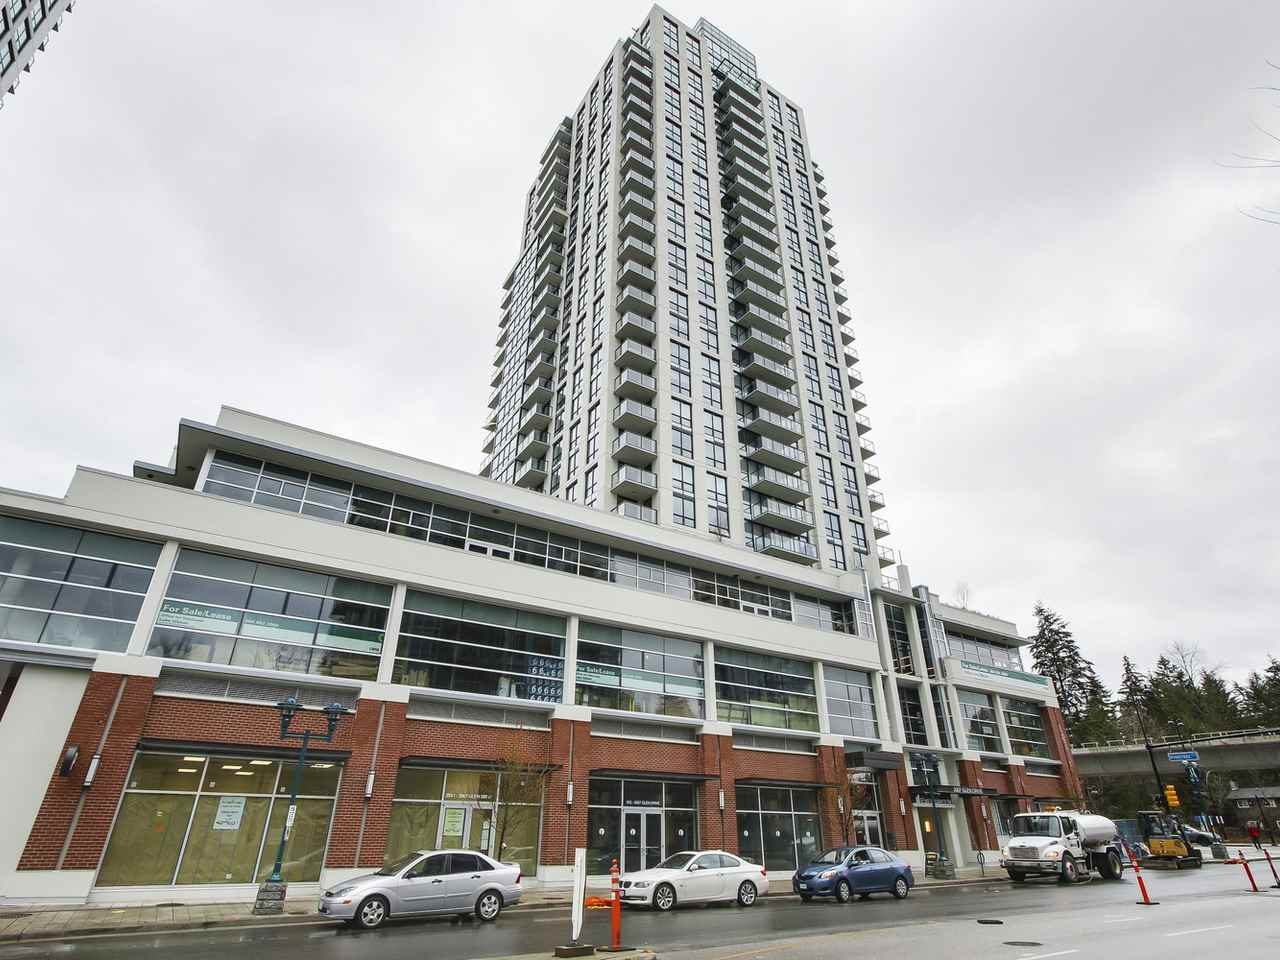 Main Photo: 801 3007 GLEN Drive in Coquitlam: North Coquitlam Condo for sale : MLS® # R2148743